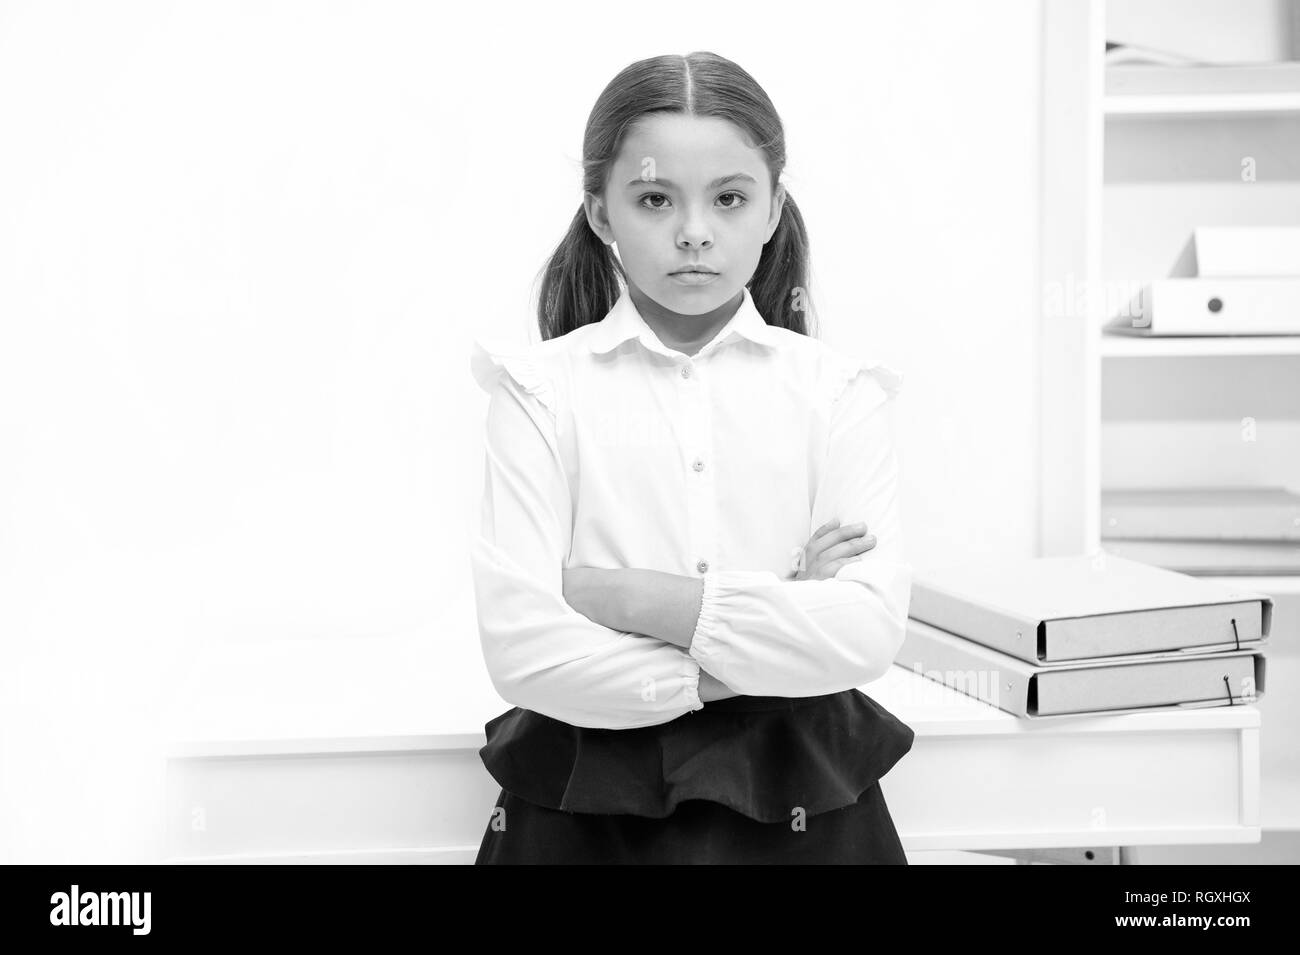 Smart glance. Child girl wears school uniform standing with crossed arms on chest. Schoolgirl smart child looks serious white interior background. Girl serious about knowledge and education in school. - Stock Image